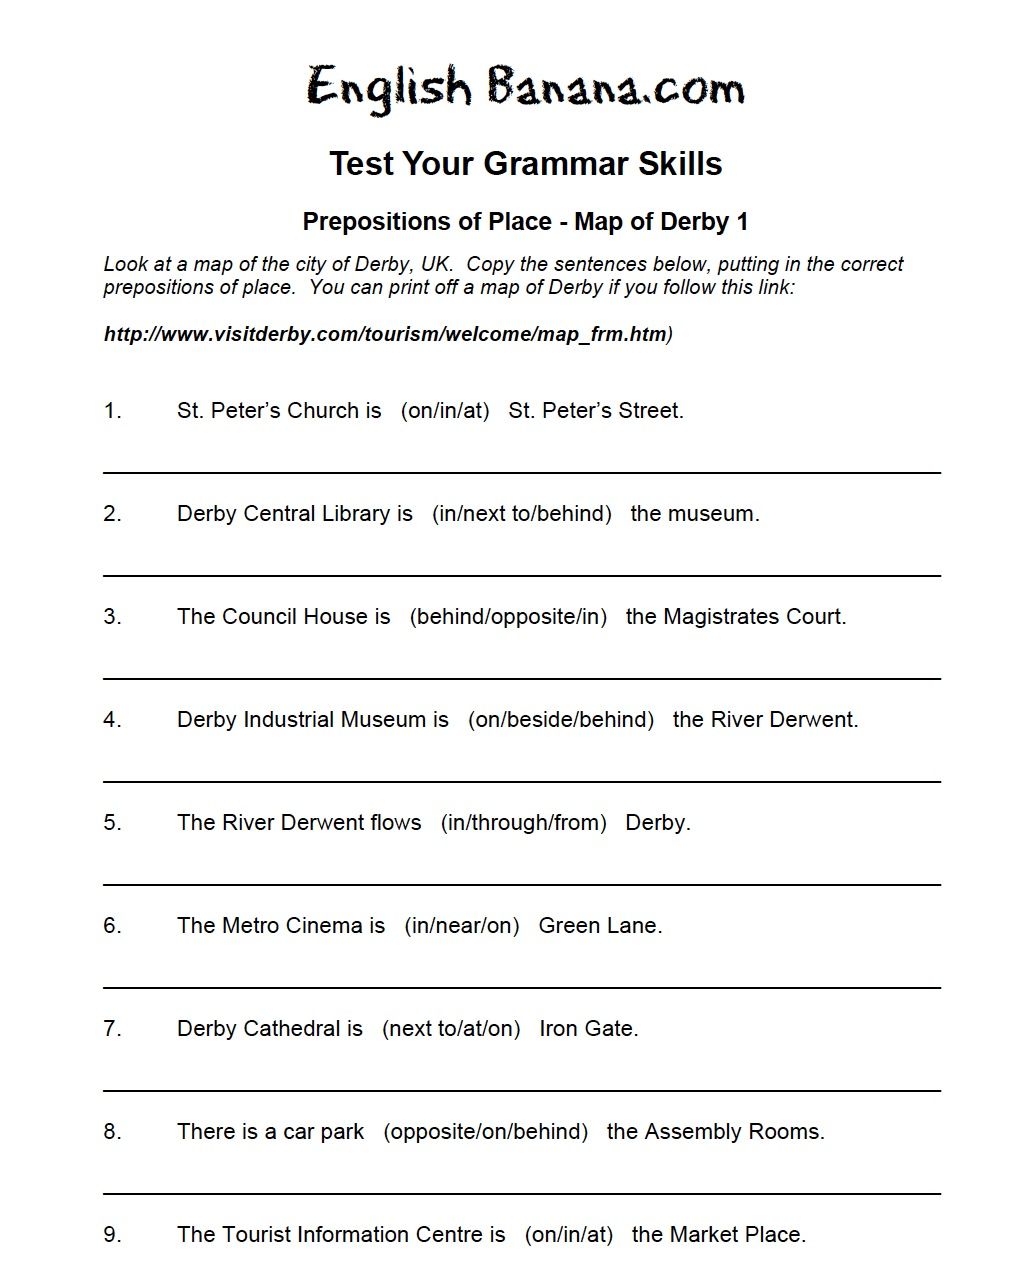 Worksheets Preposition Worksheet Pdf map of derby prepositions place recurso educativo 42575 42575